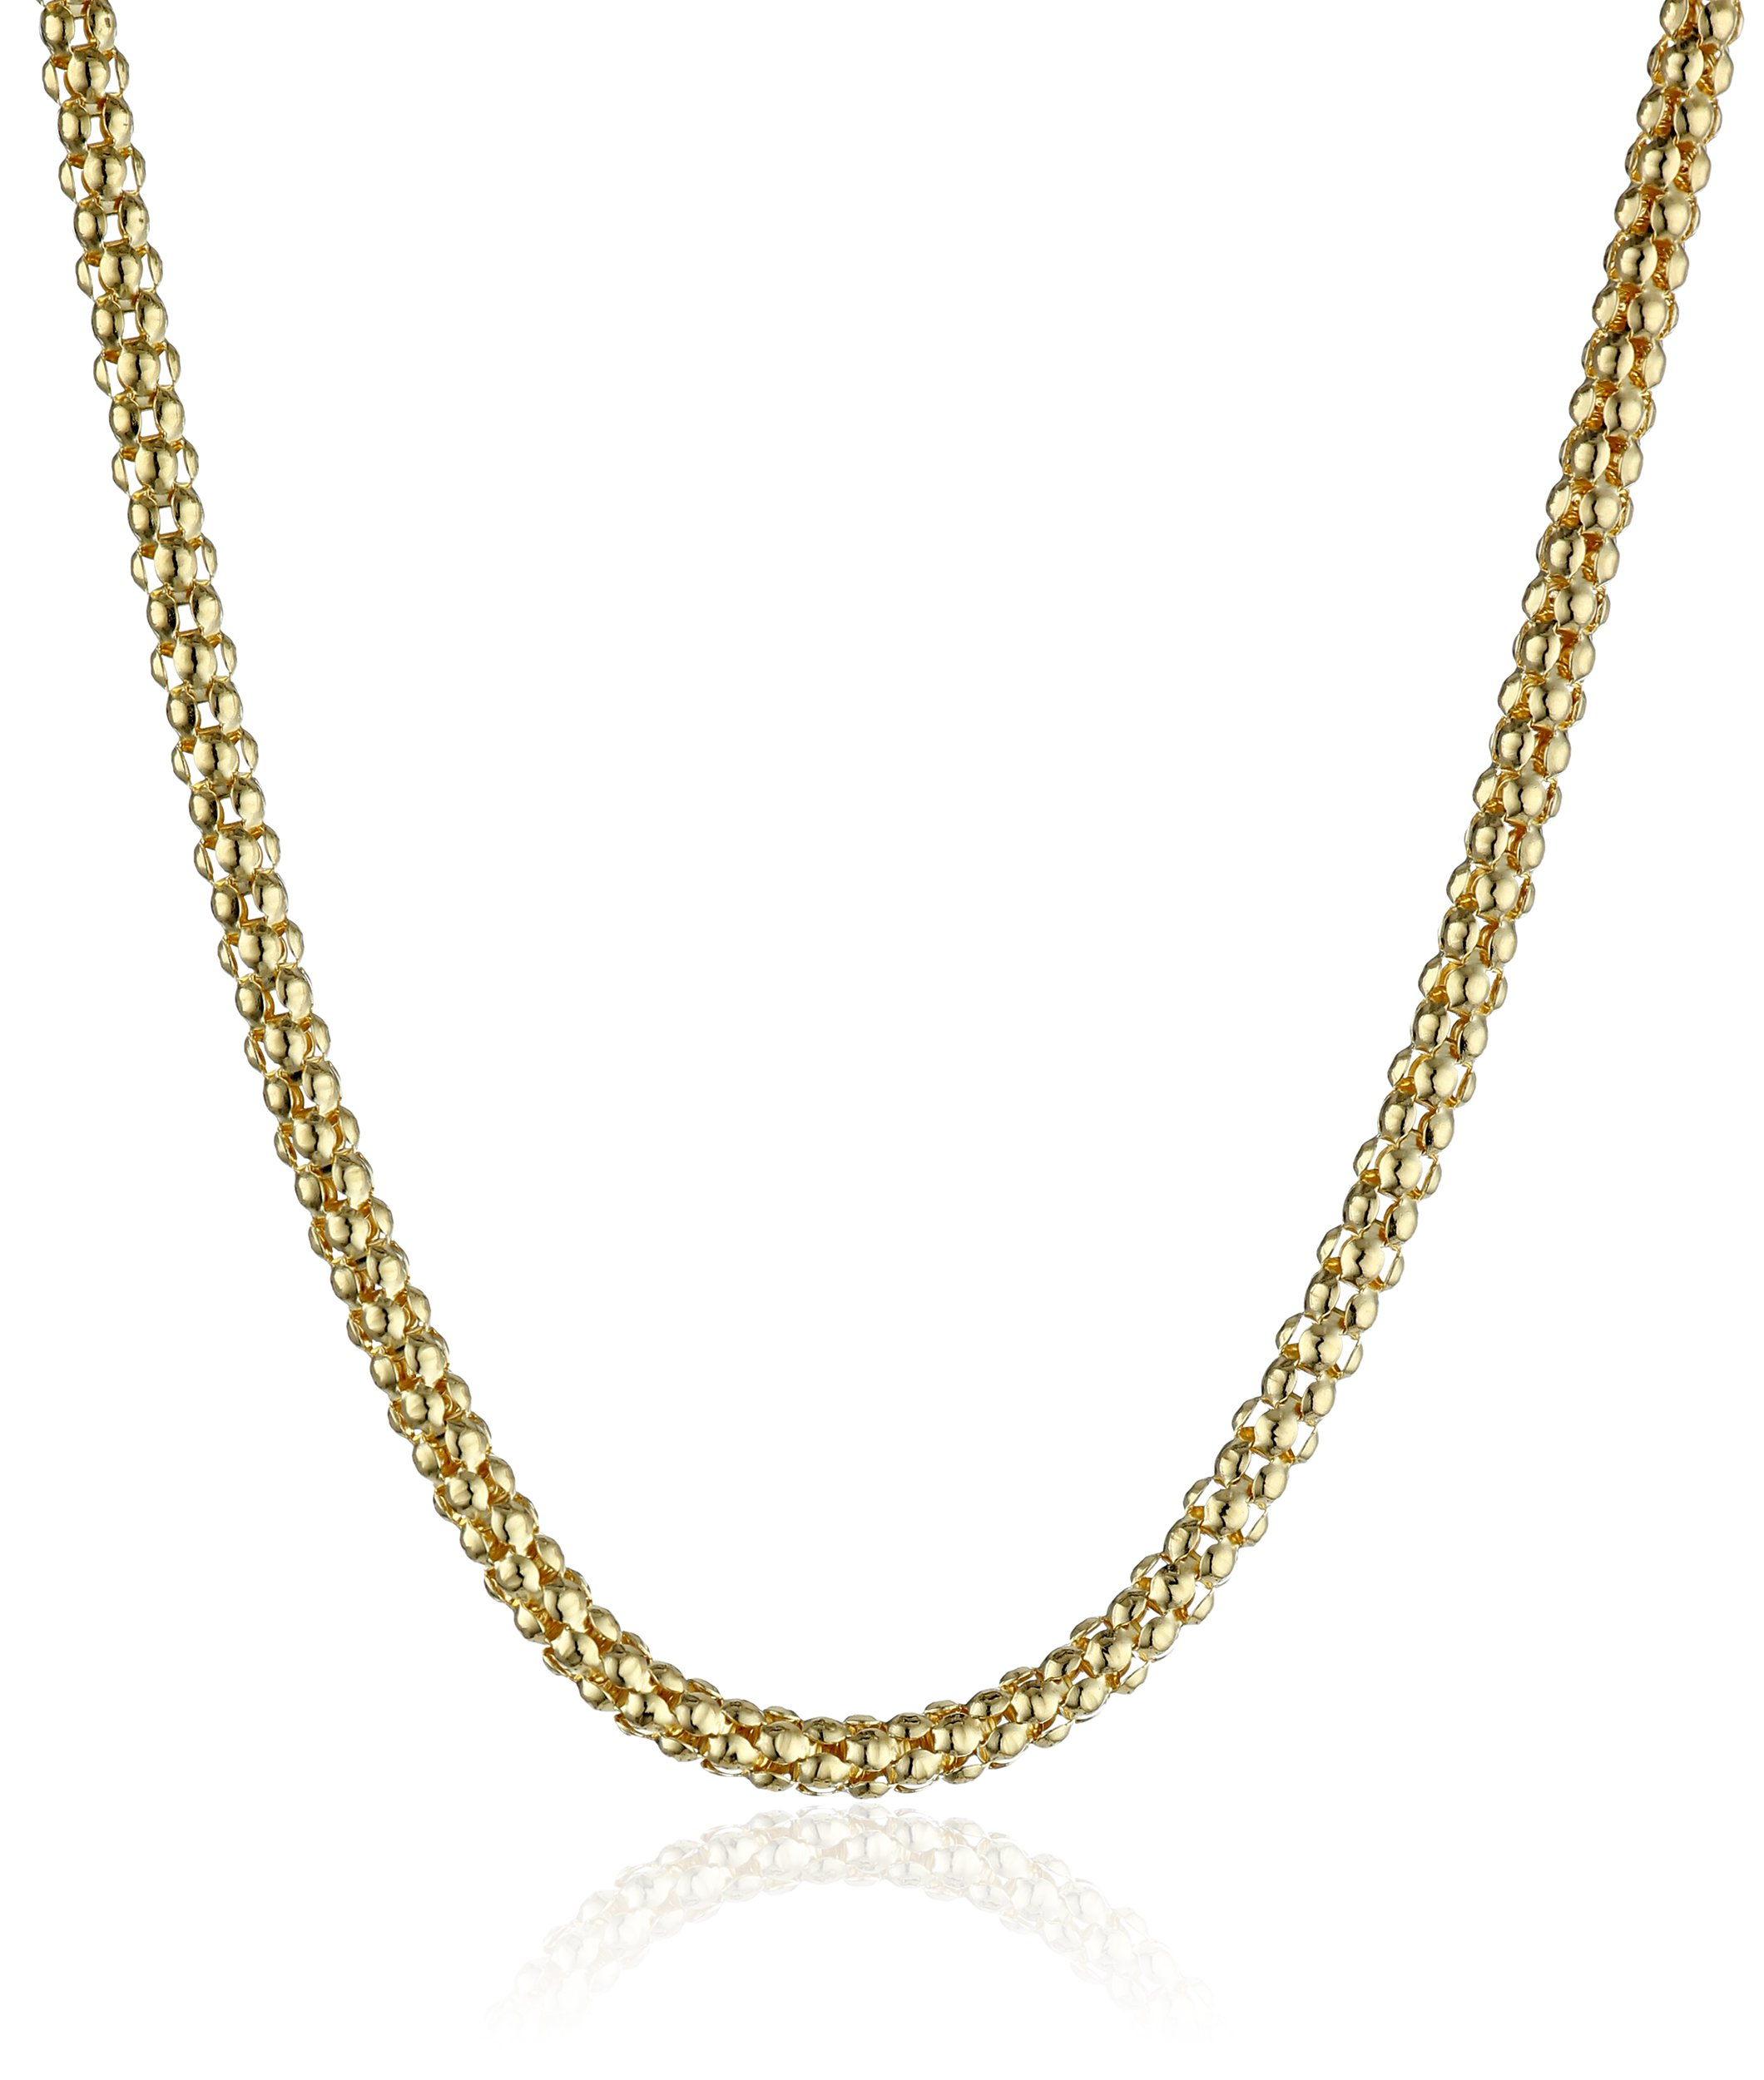 14k Yellow Gold Italian 2.50mm Popcorn-Chain Necklace, 18''